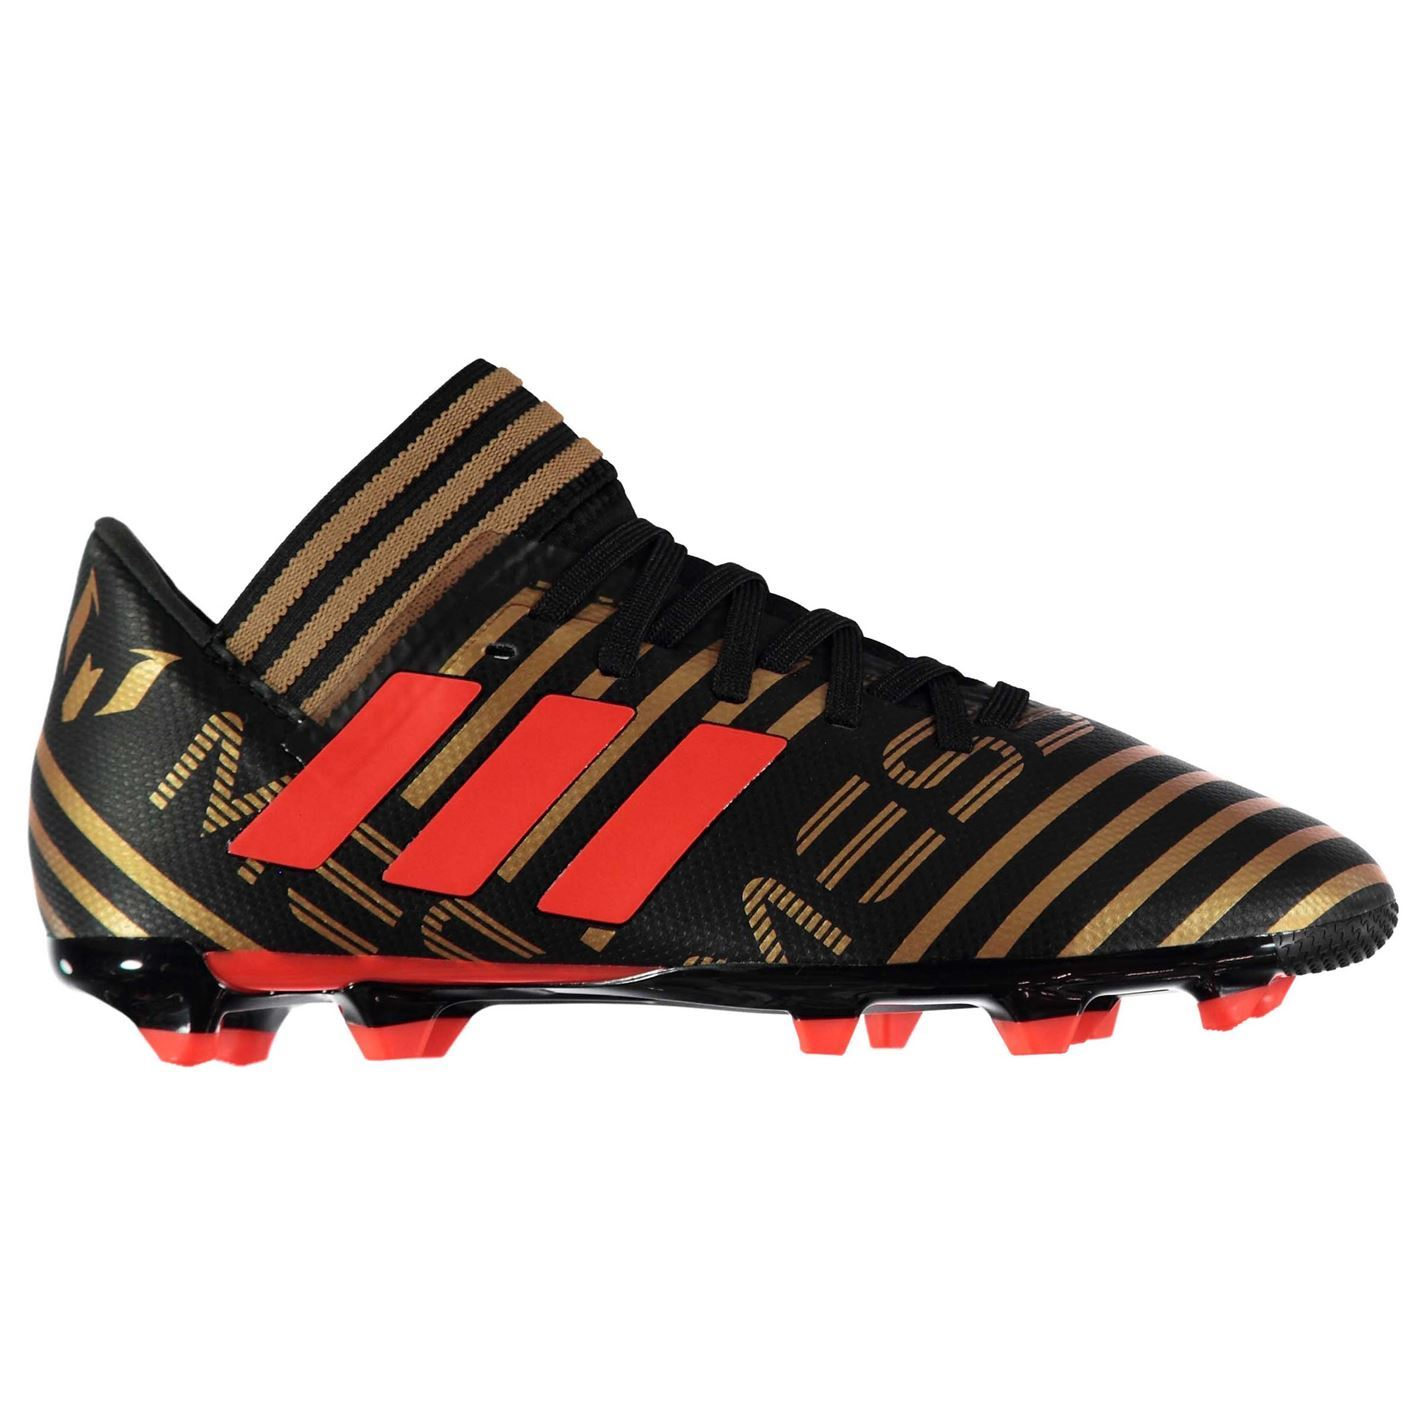 a9e3a0f6ddf1 adidas Nemeziz Messi 17.3 FG Firm Ground Kids Football Soccer Boot  Skystalker UK 13. About this product. Picture 1 of 2  Picture 2 of 2